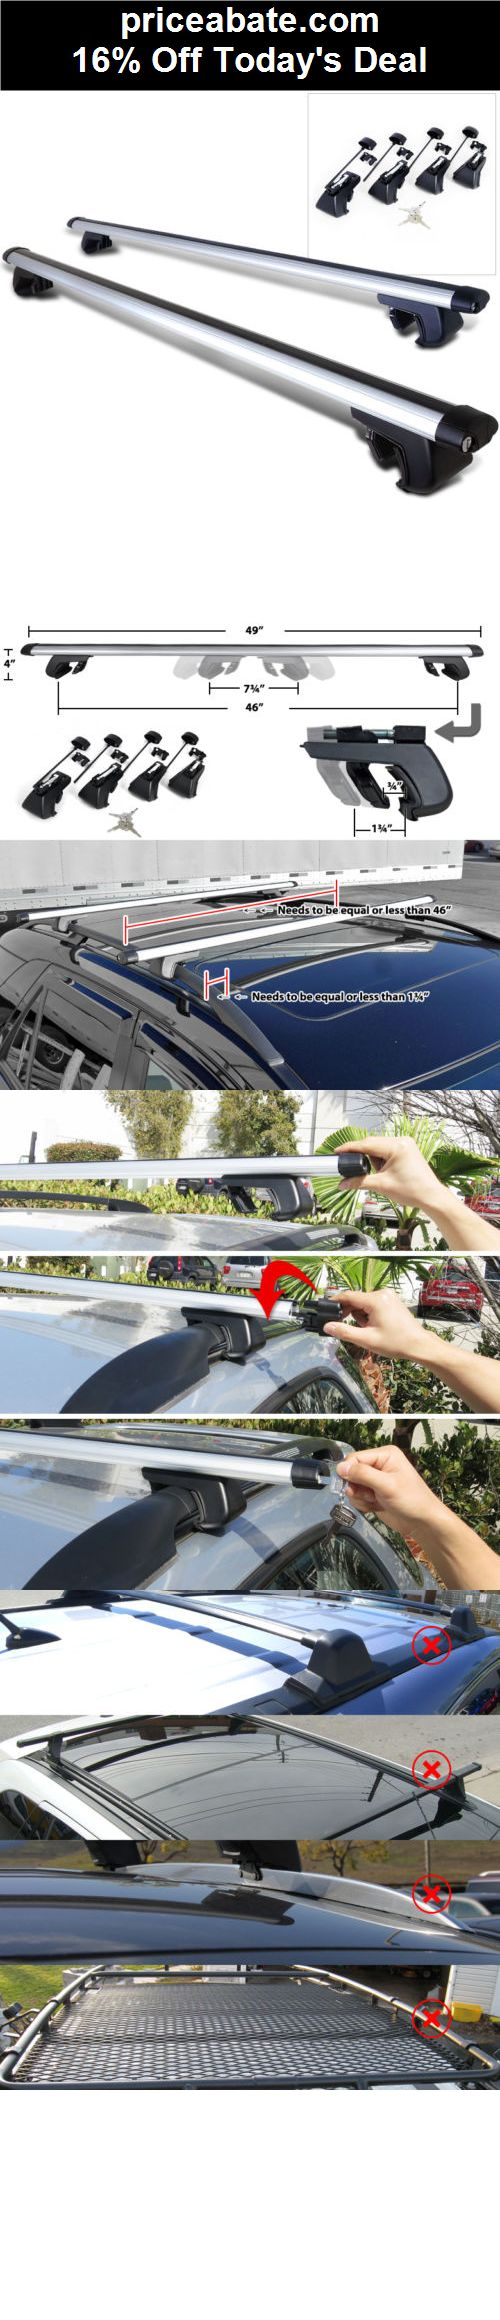 "16% Off 48""/120CM CAR SUV ALUMINUM ROOF TOP CARRIER RAIL RACKS CROSSBAR - eBay Daily Deal! - #priceabate! BUY IT NOW ONLY $48.95"